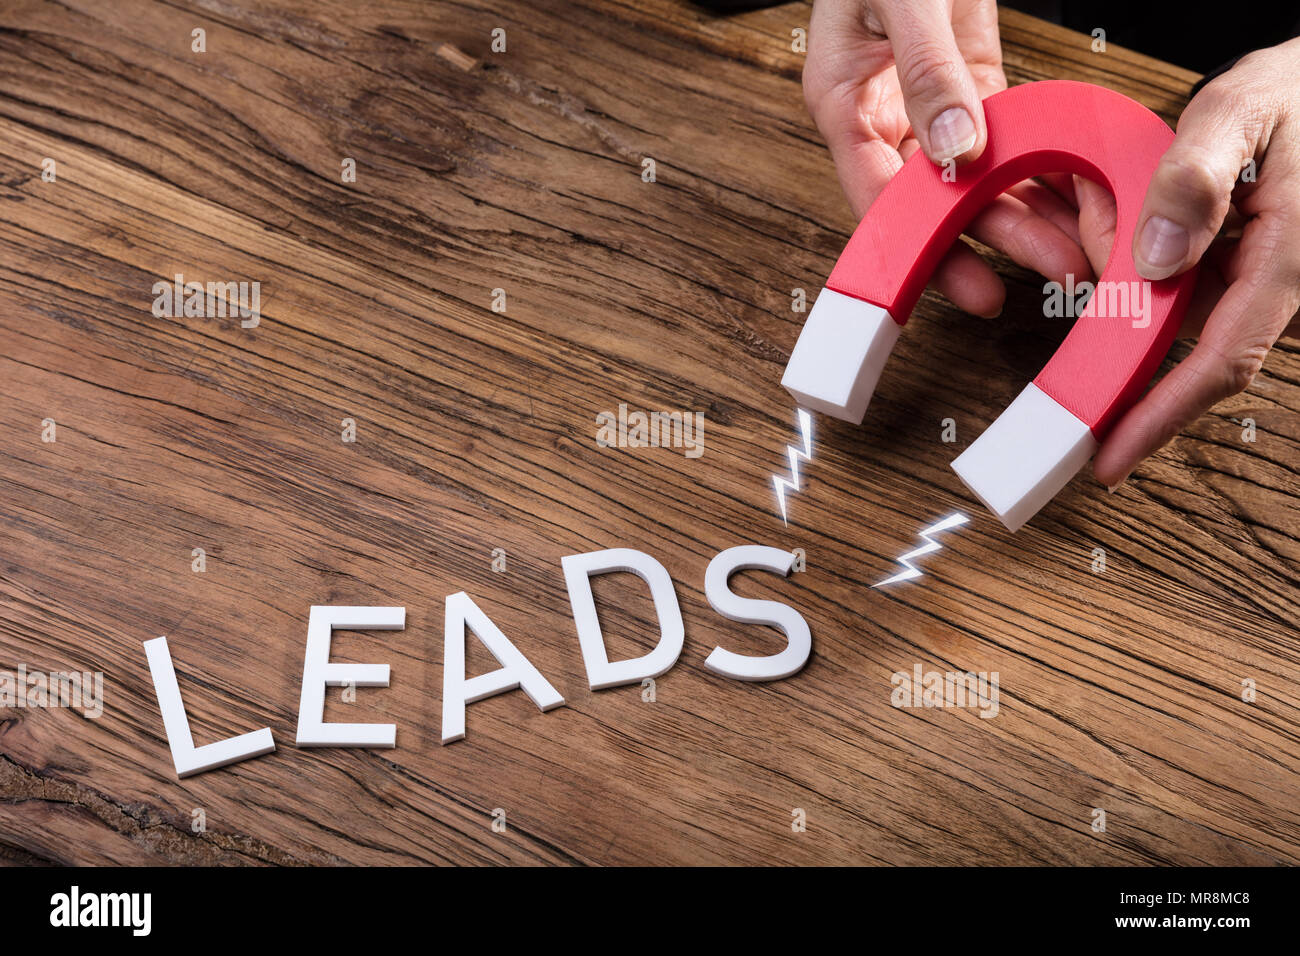 Businessperson Attracting White Lead Text With Horseshoe Magnet Over Wooden Desk - Stock Image